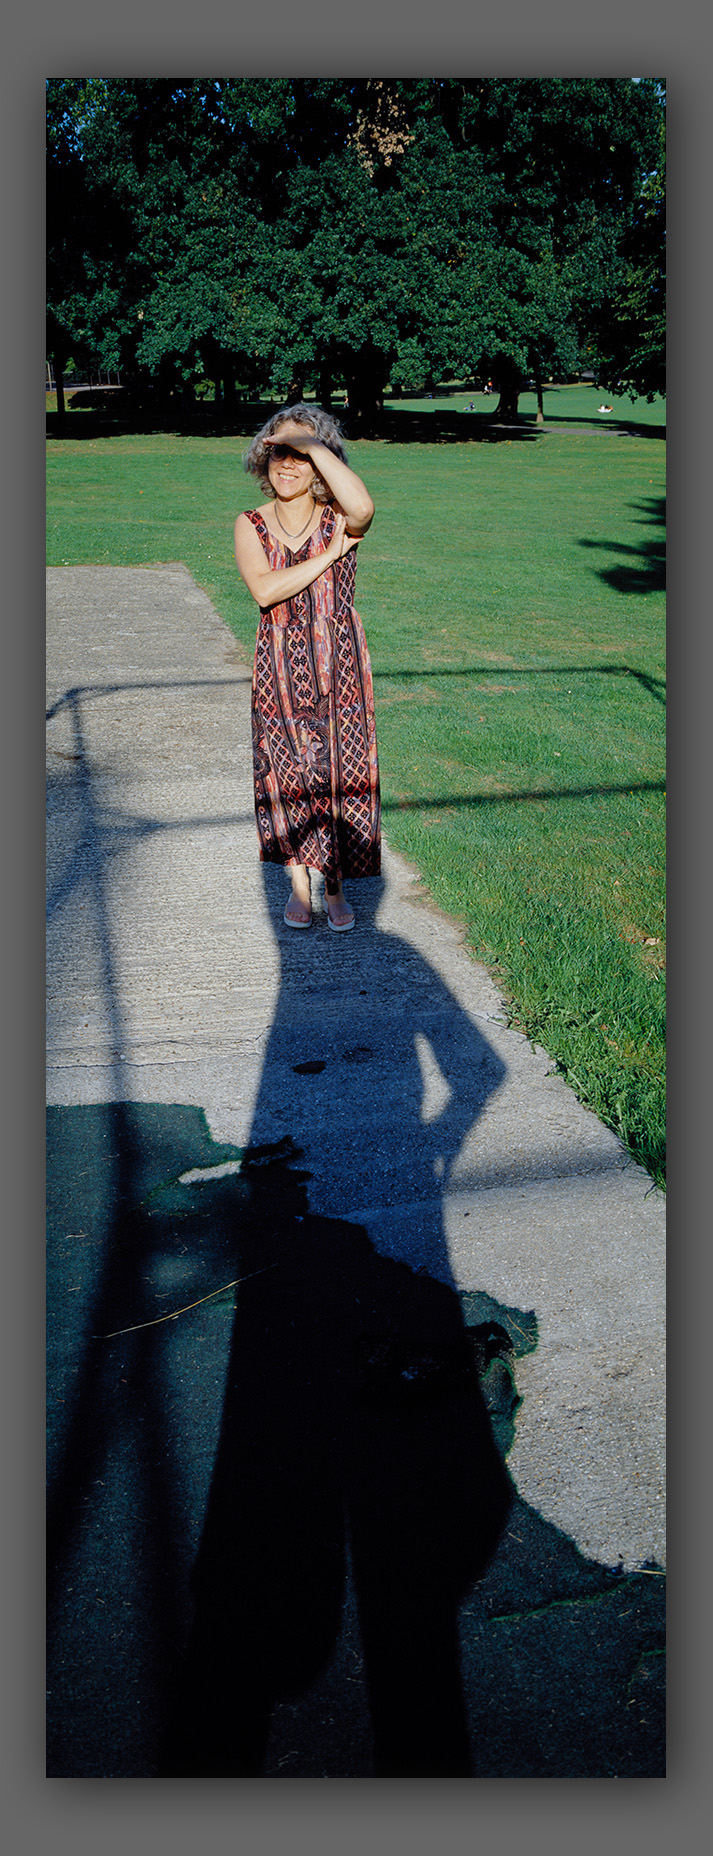 """Marisa with my Shadow - From the """"Little Poems - People"""" series"""